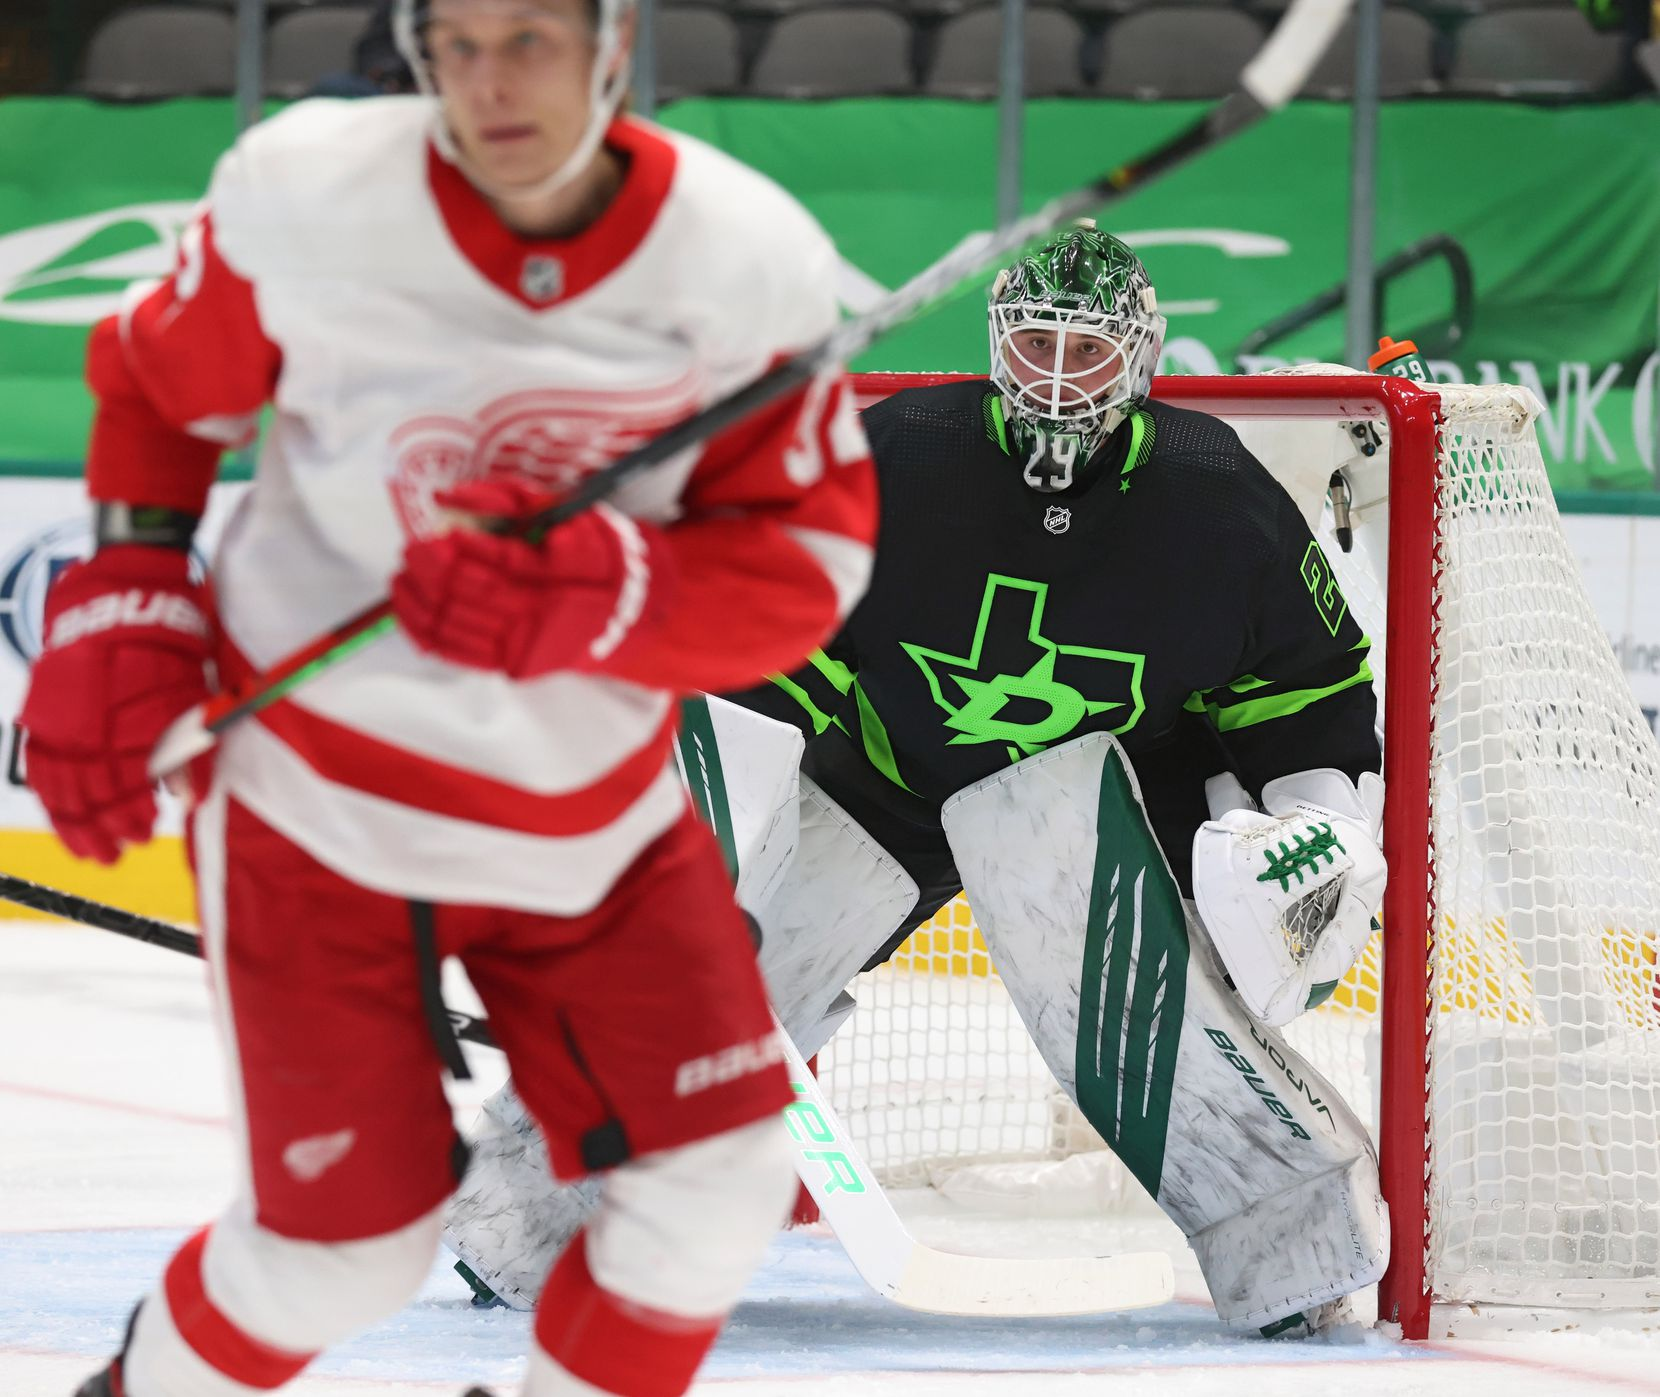 Dallas Stars goaltender Jake Oettinger (29) watches the play develop as he plays against the Detroit Red Wings during the second period of play at American Airlines Center on Thursday, January 28, 2021in Dallas. (Vernon Bryant/The Dallas Morning News)